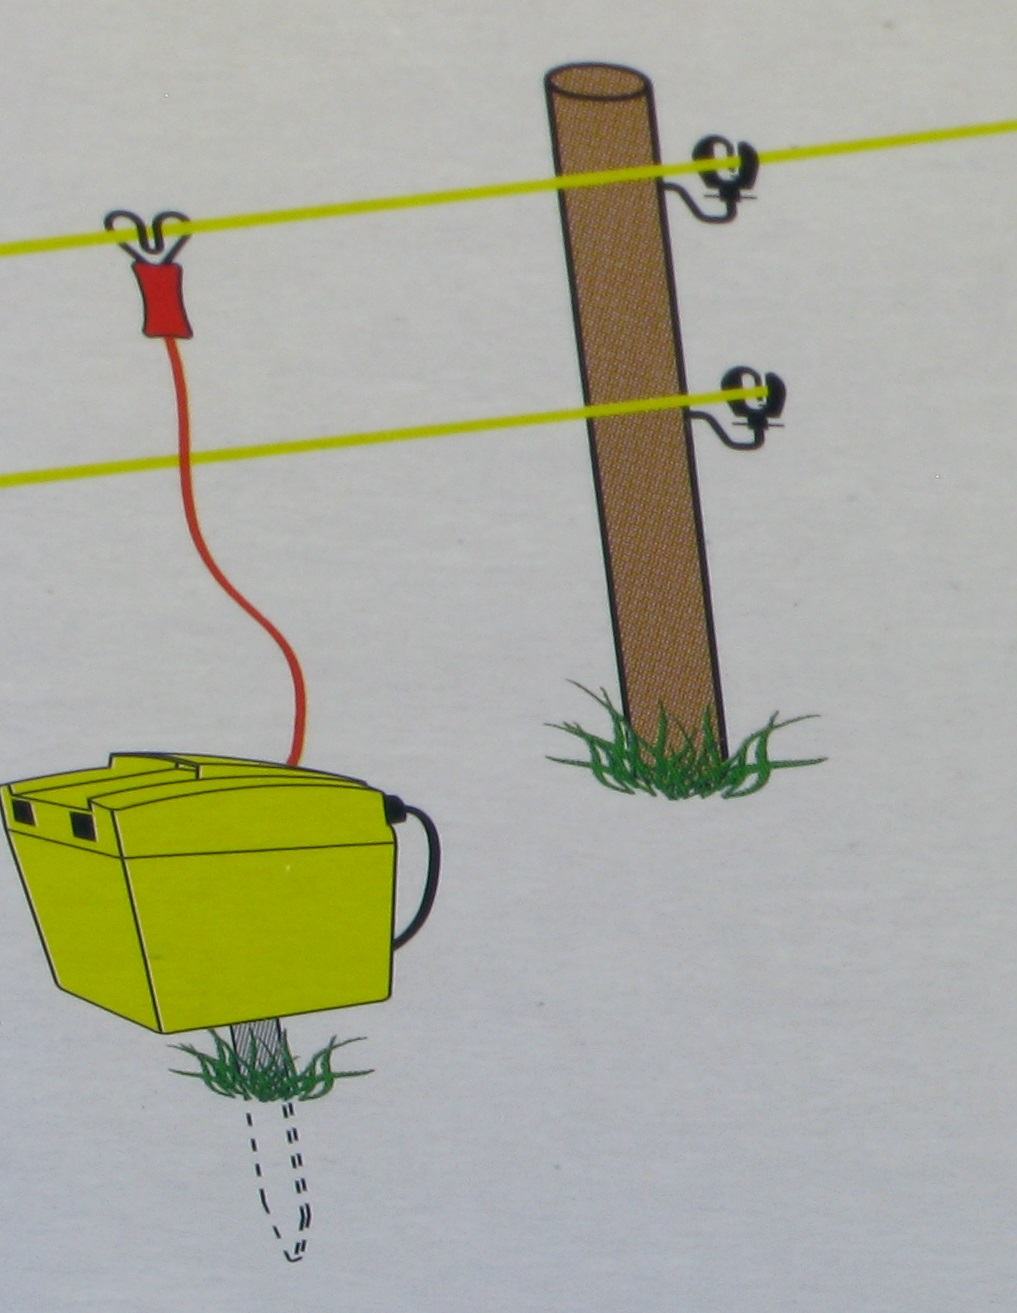 Equistop B1 - Electric Fence